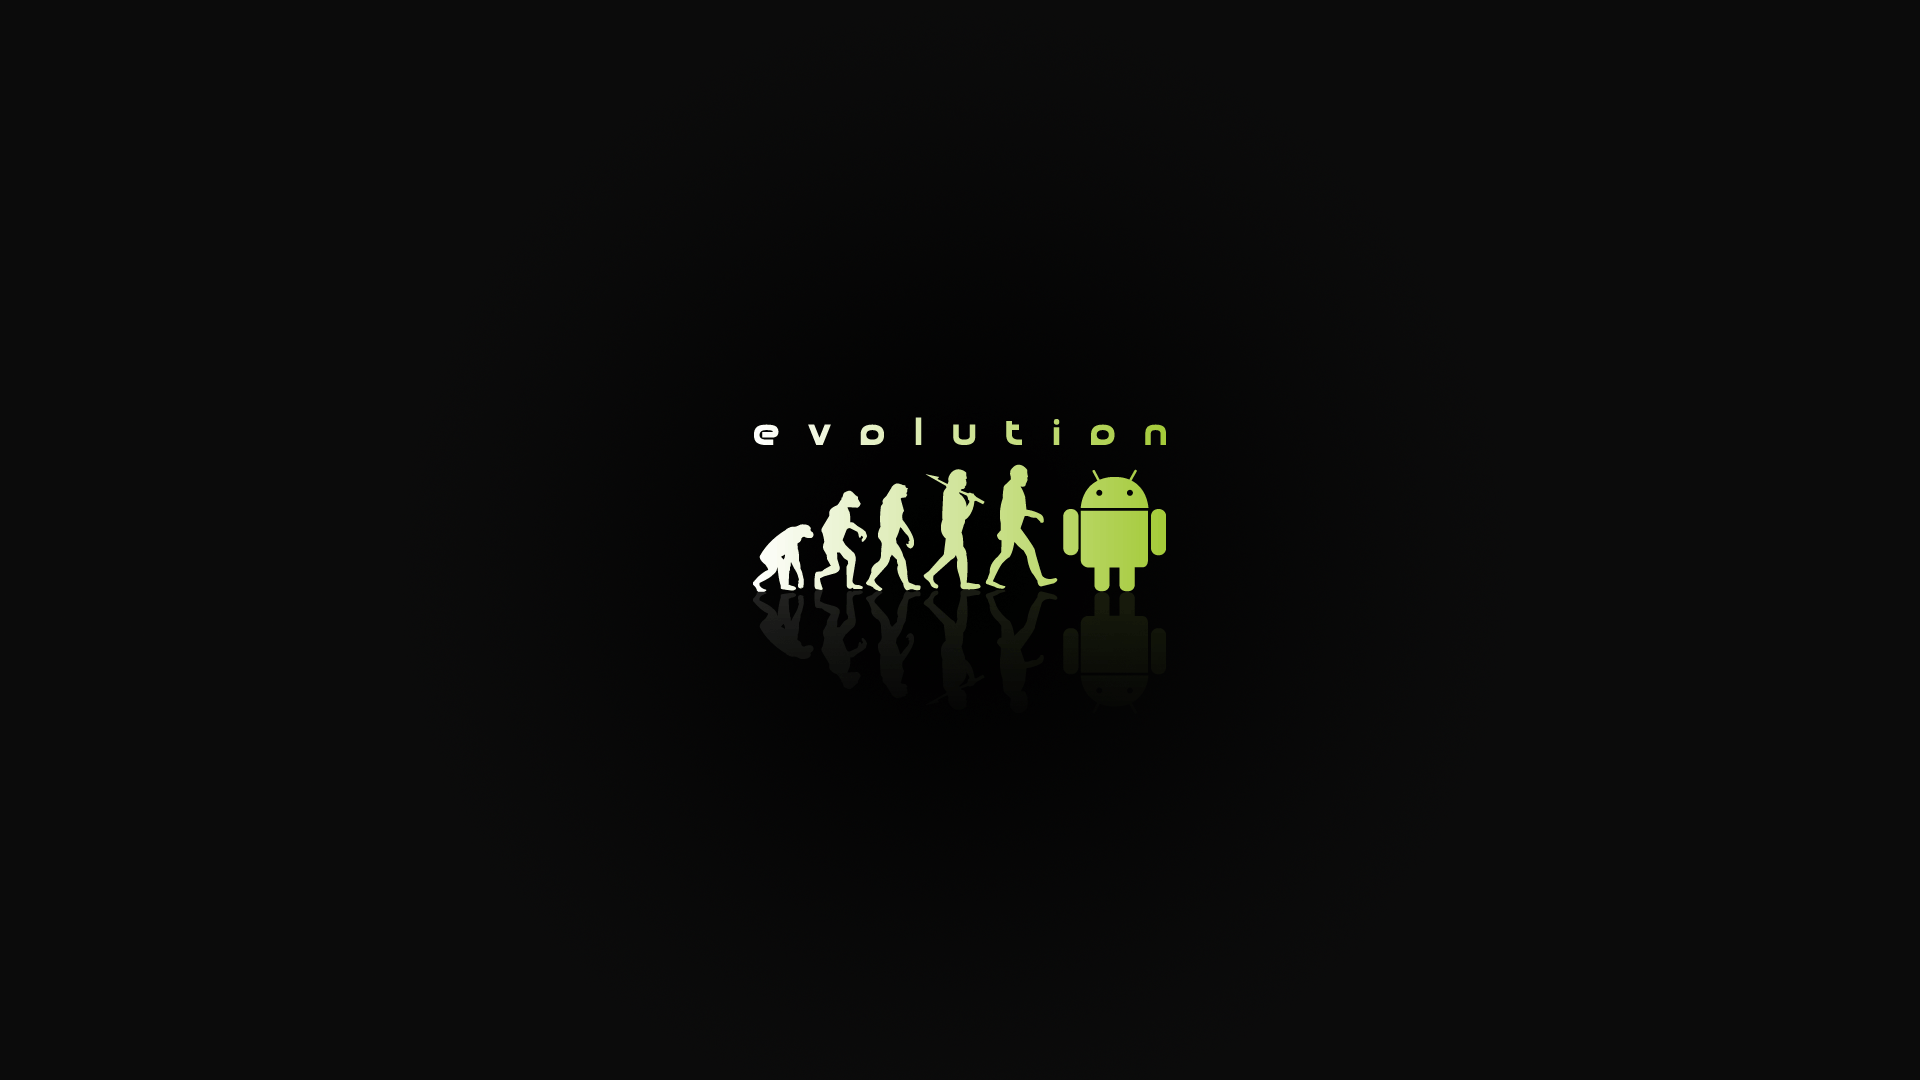 android wallpapers resolution wallpaper cave